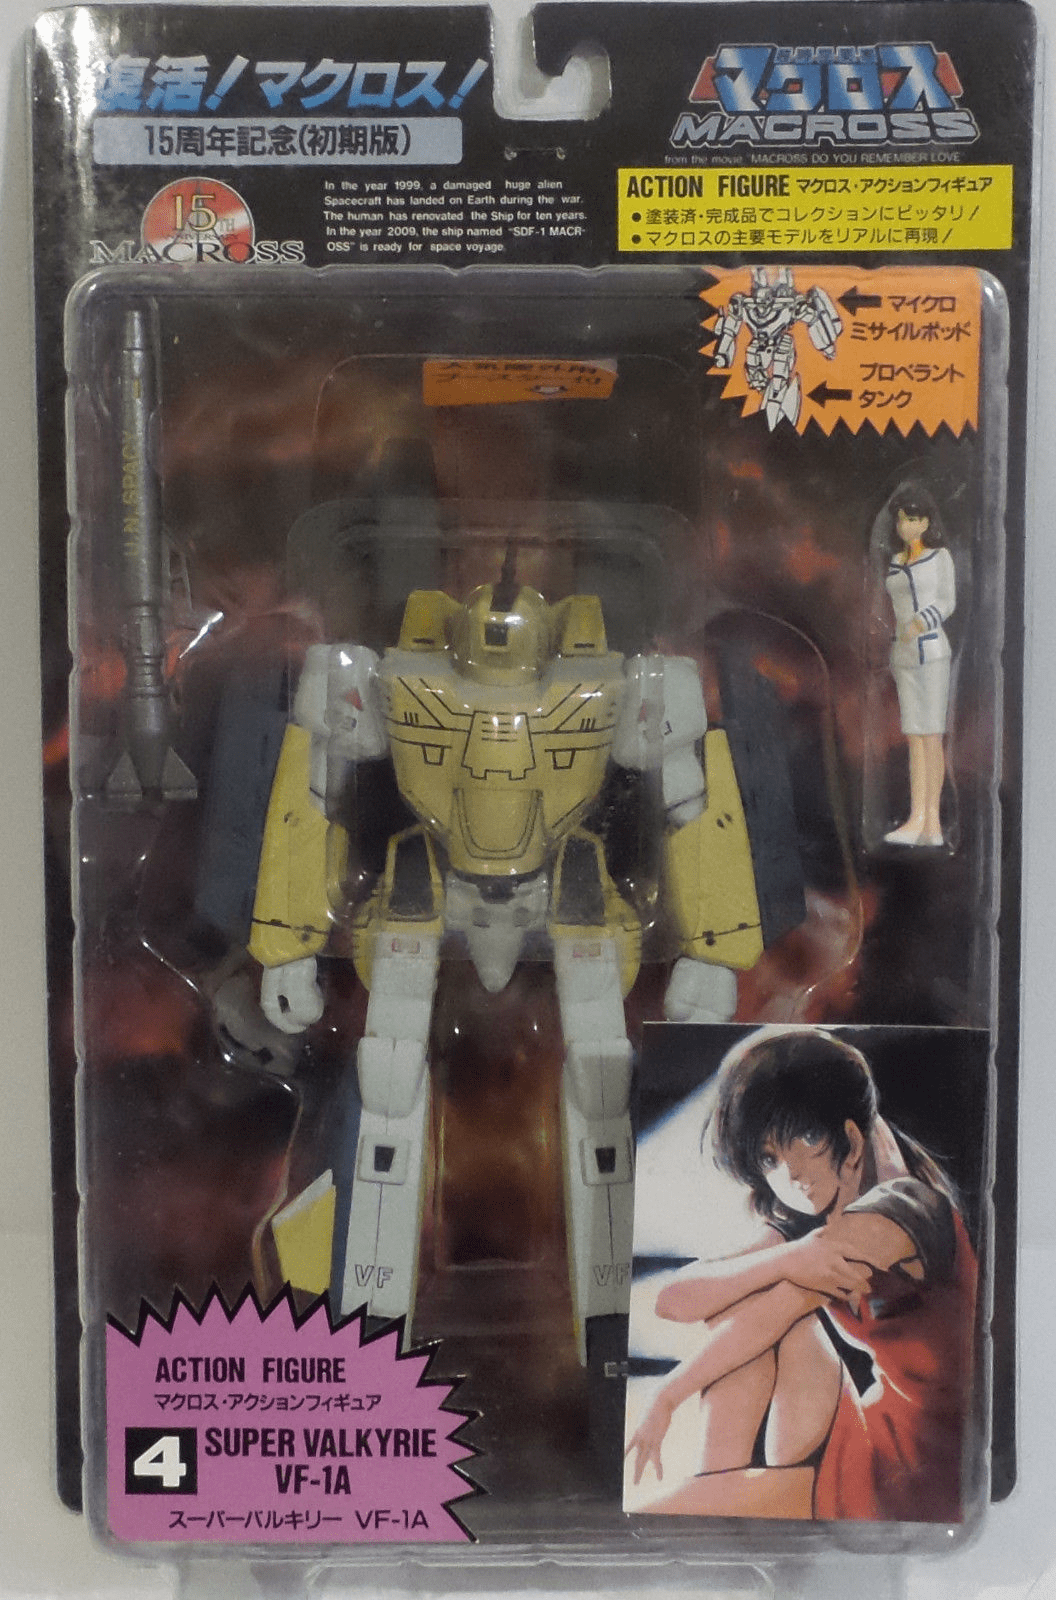 ARII Macross 15th Anniversary #4 Super Valkyrie VF-1A Figure